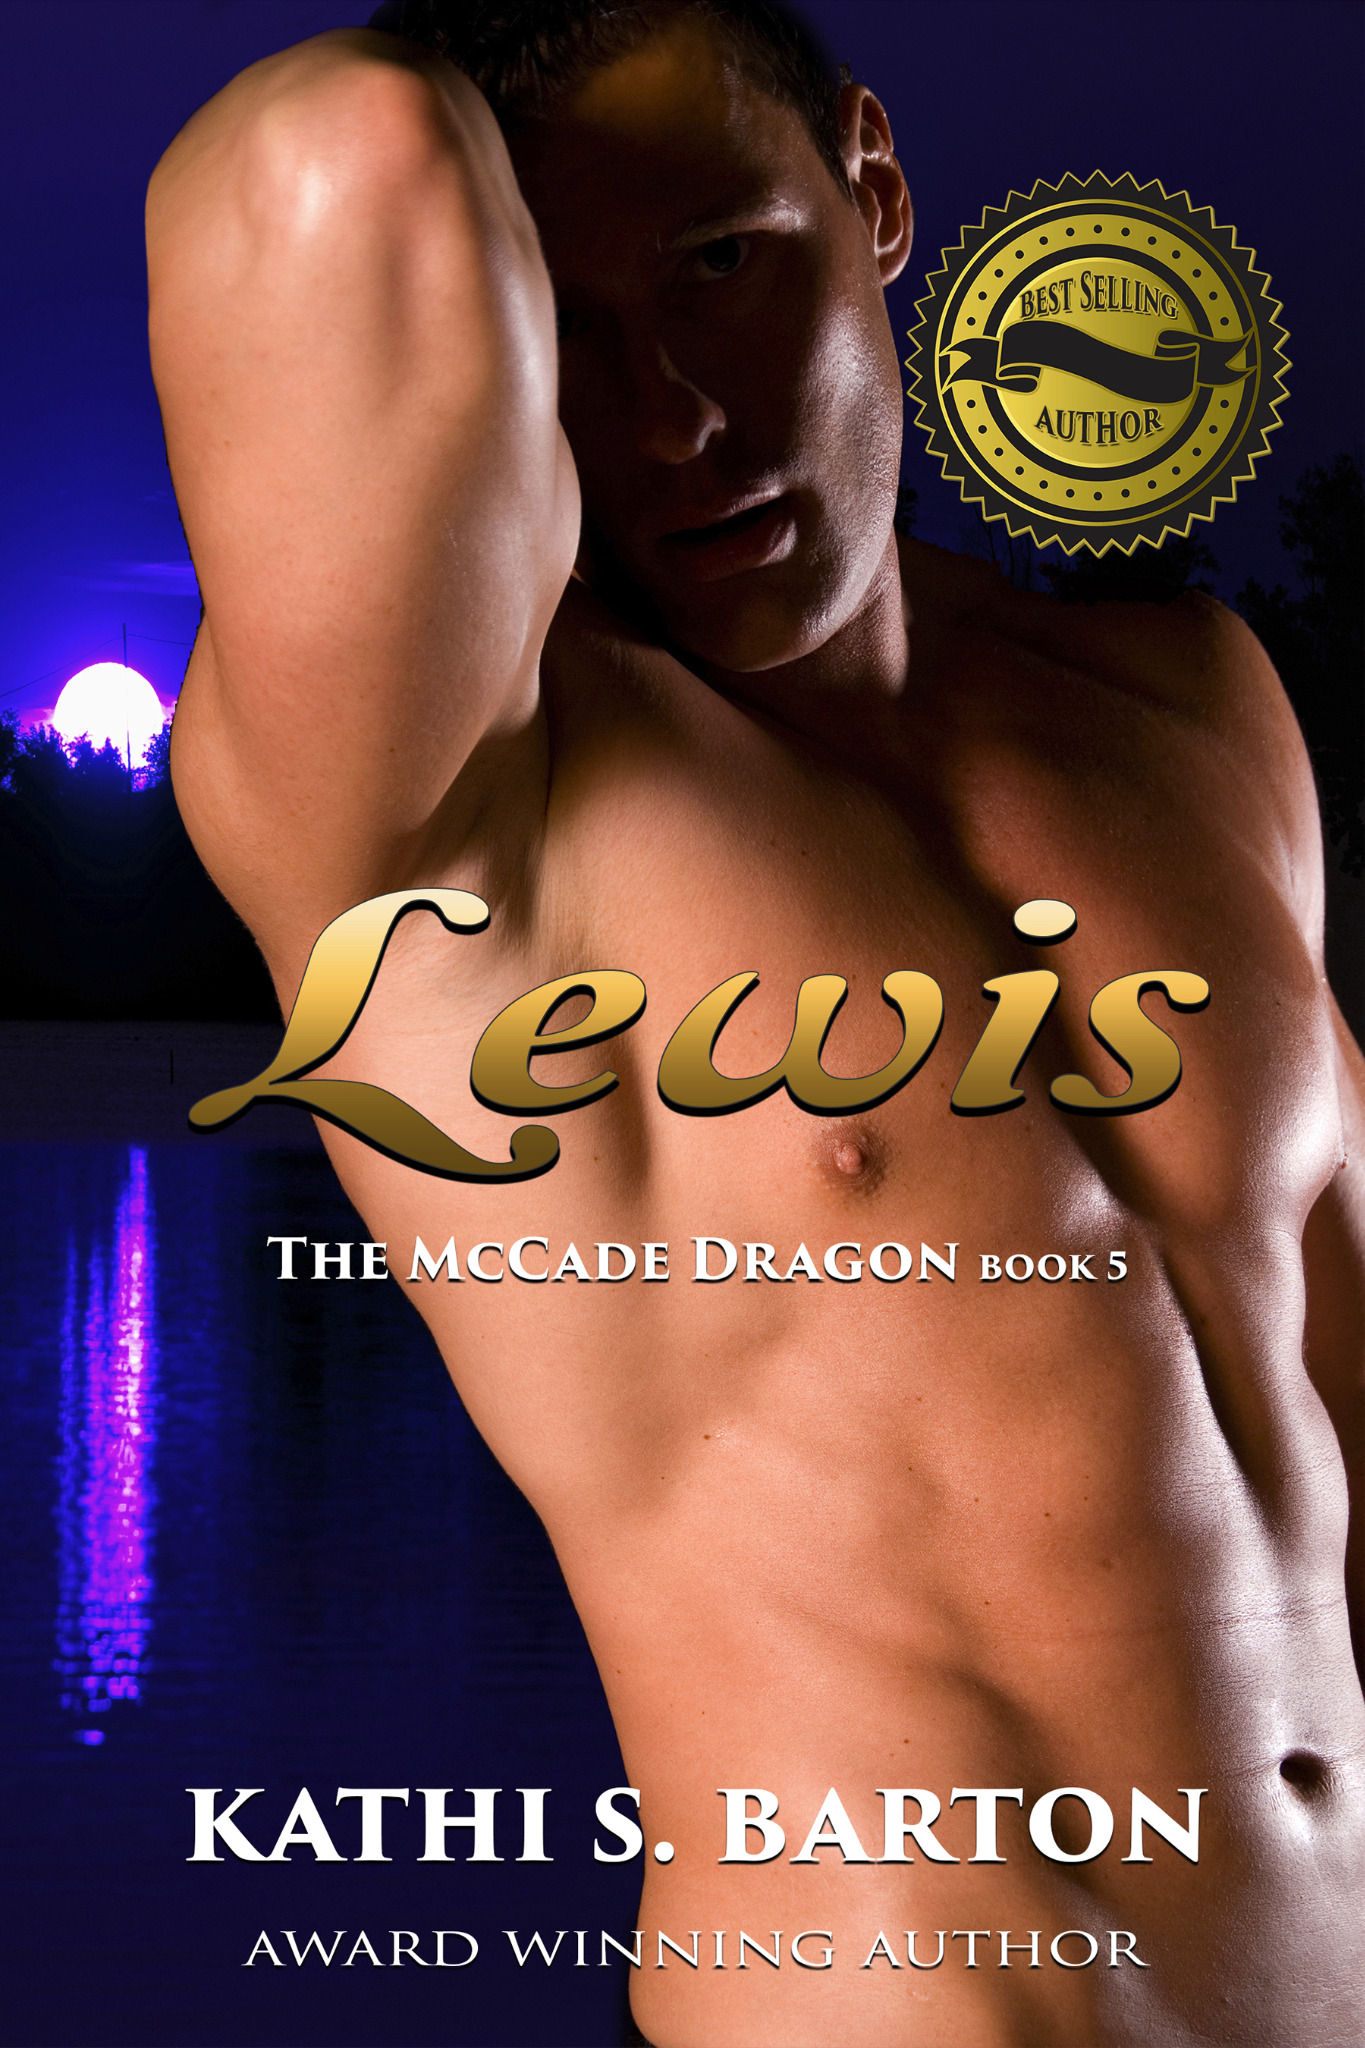 Lewis - The McCade Dragon Book 5